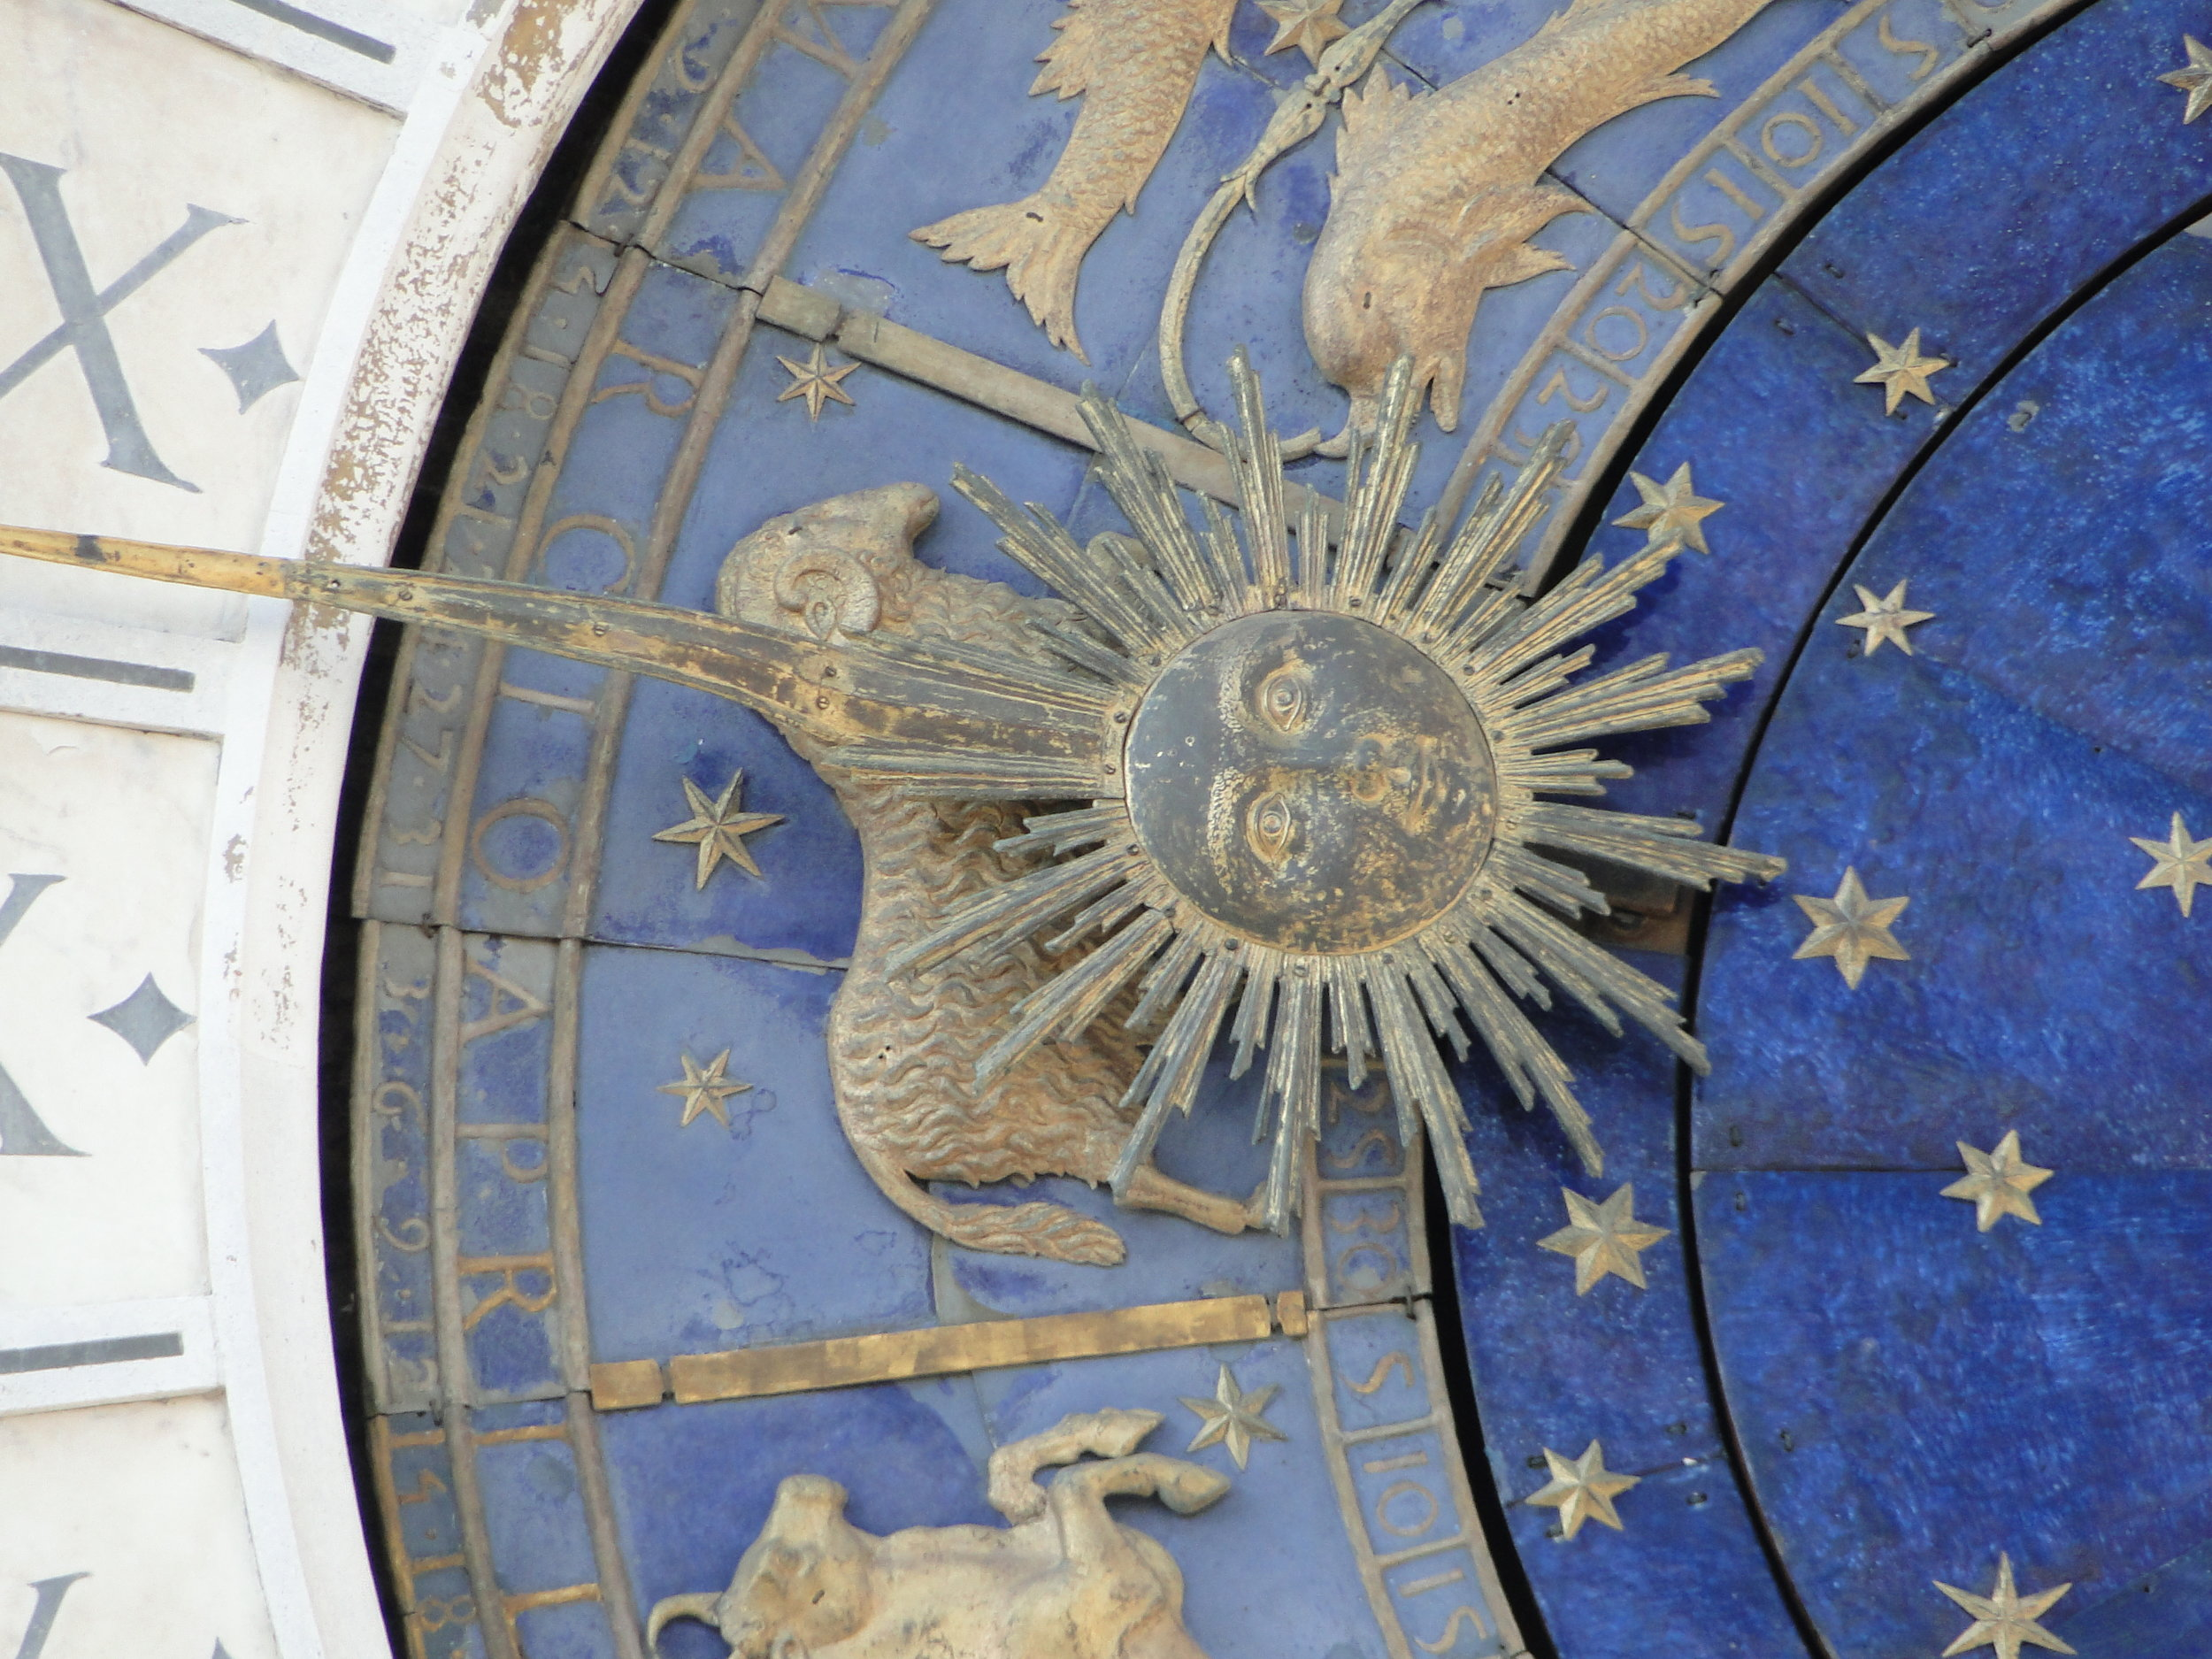 Close-up of the zodiac symbols on St. Mark's Clock Tower